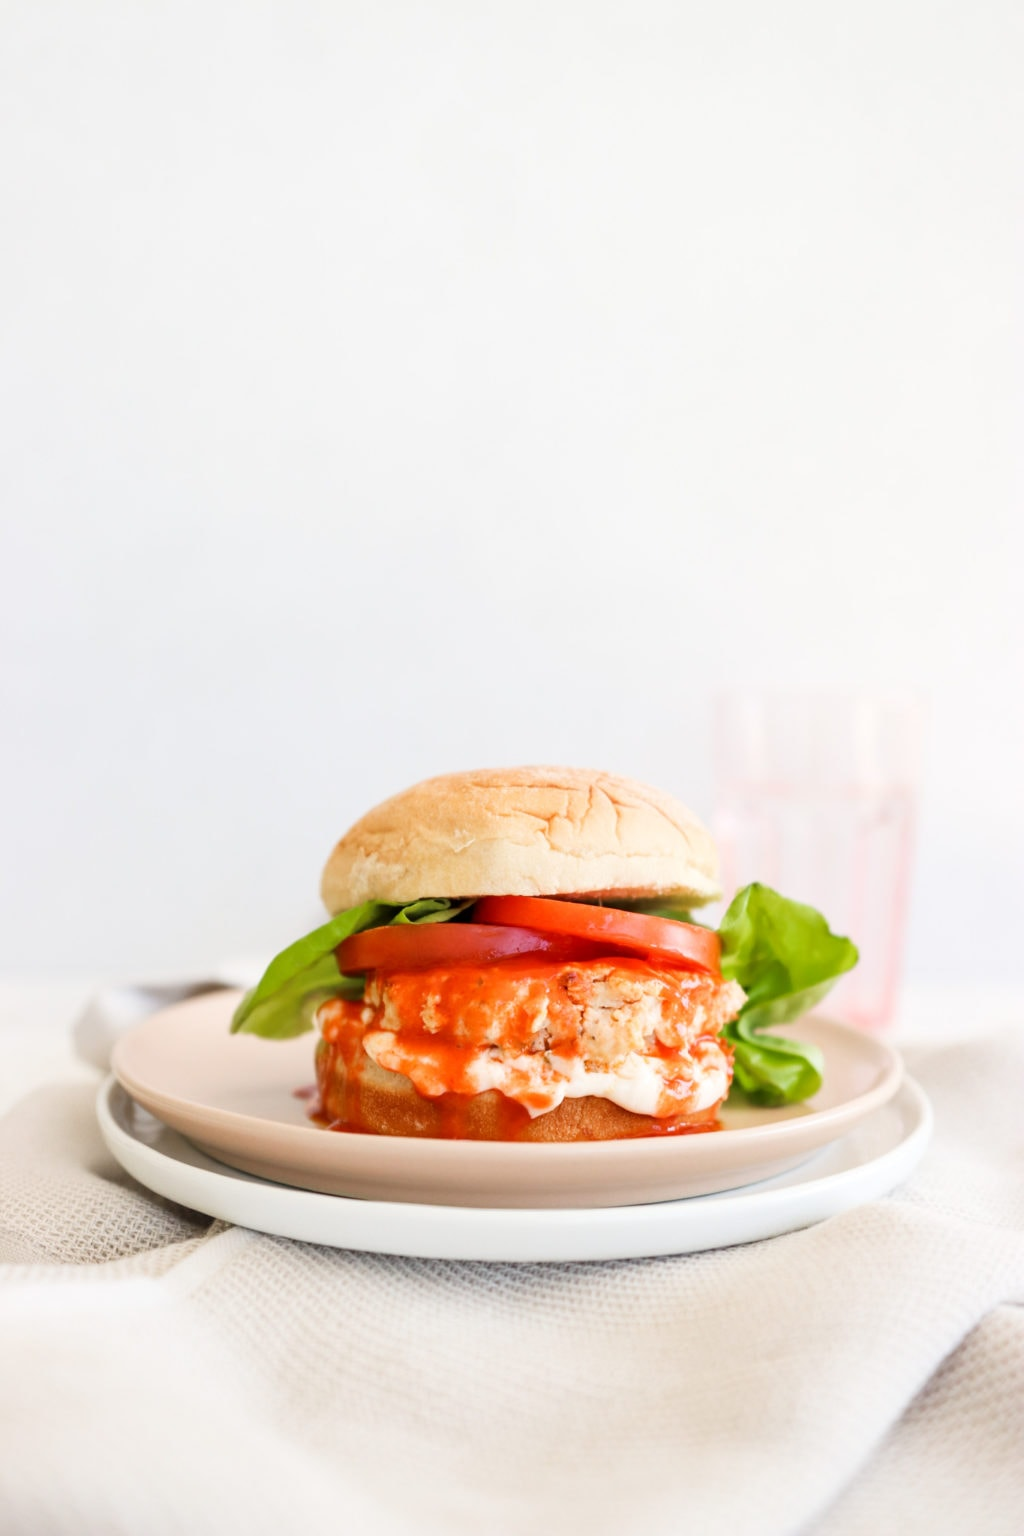 Buffalo chicken burger on a pink plate over a white plate sitting on a neutral coloured kitchen towel. Ingredients include: burger bun, buffalo chicken patty, lettuce, tomato, and hot sauce.